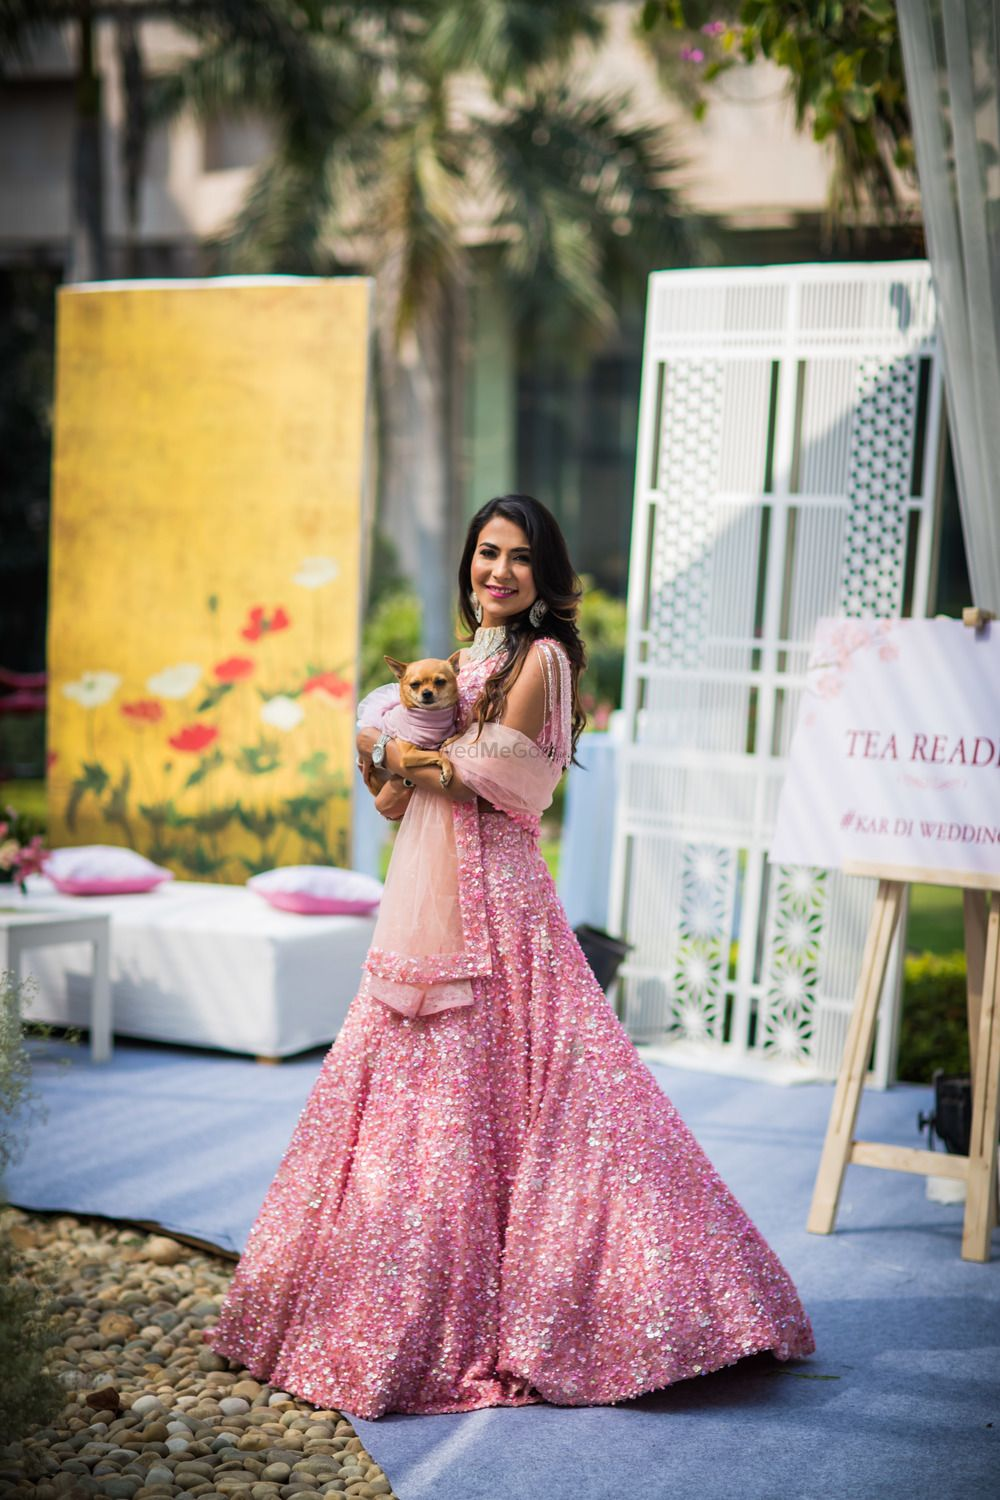 Photo of Bride in pink engagement outfit with dog